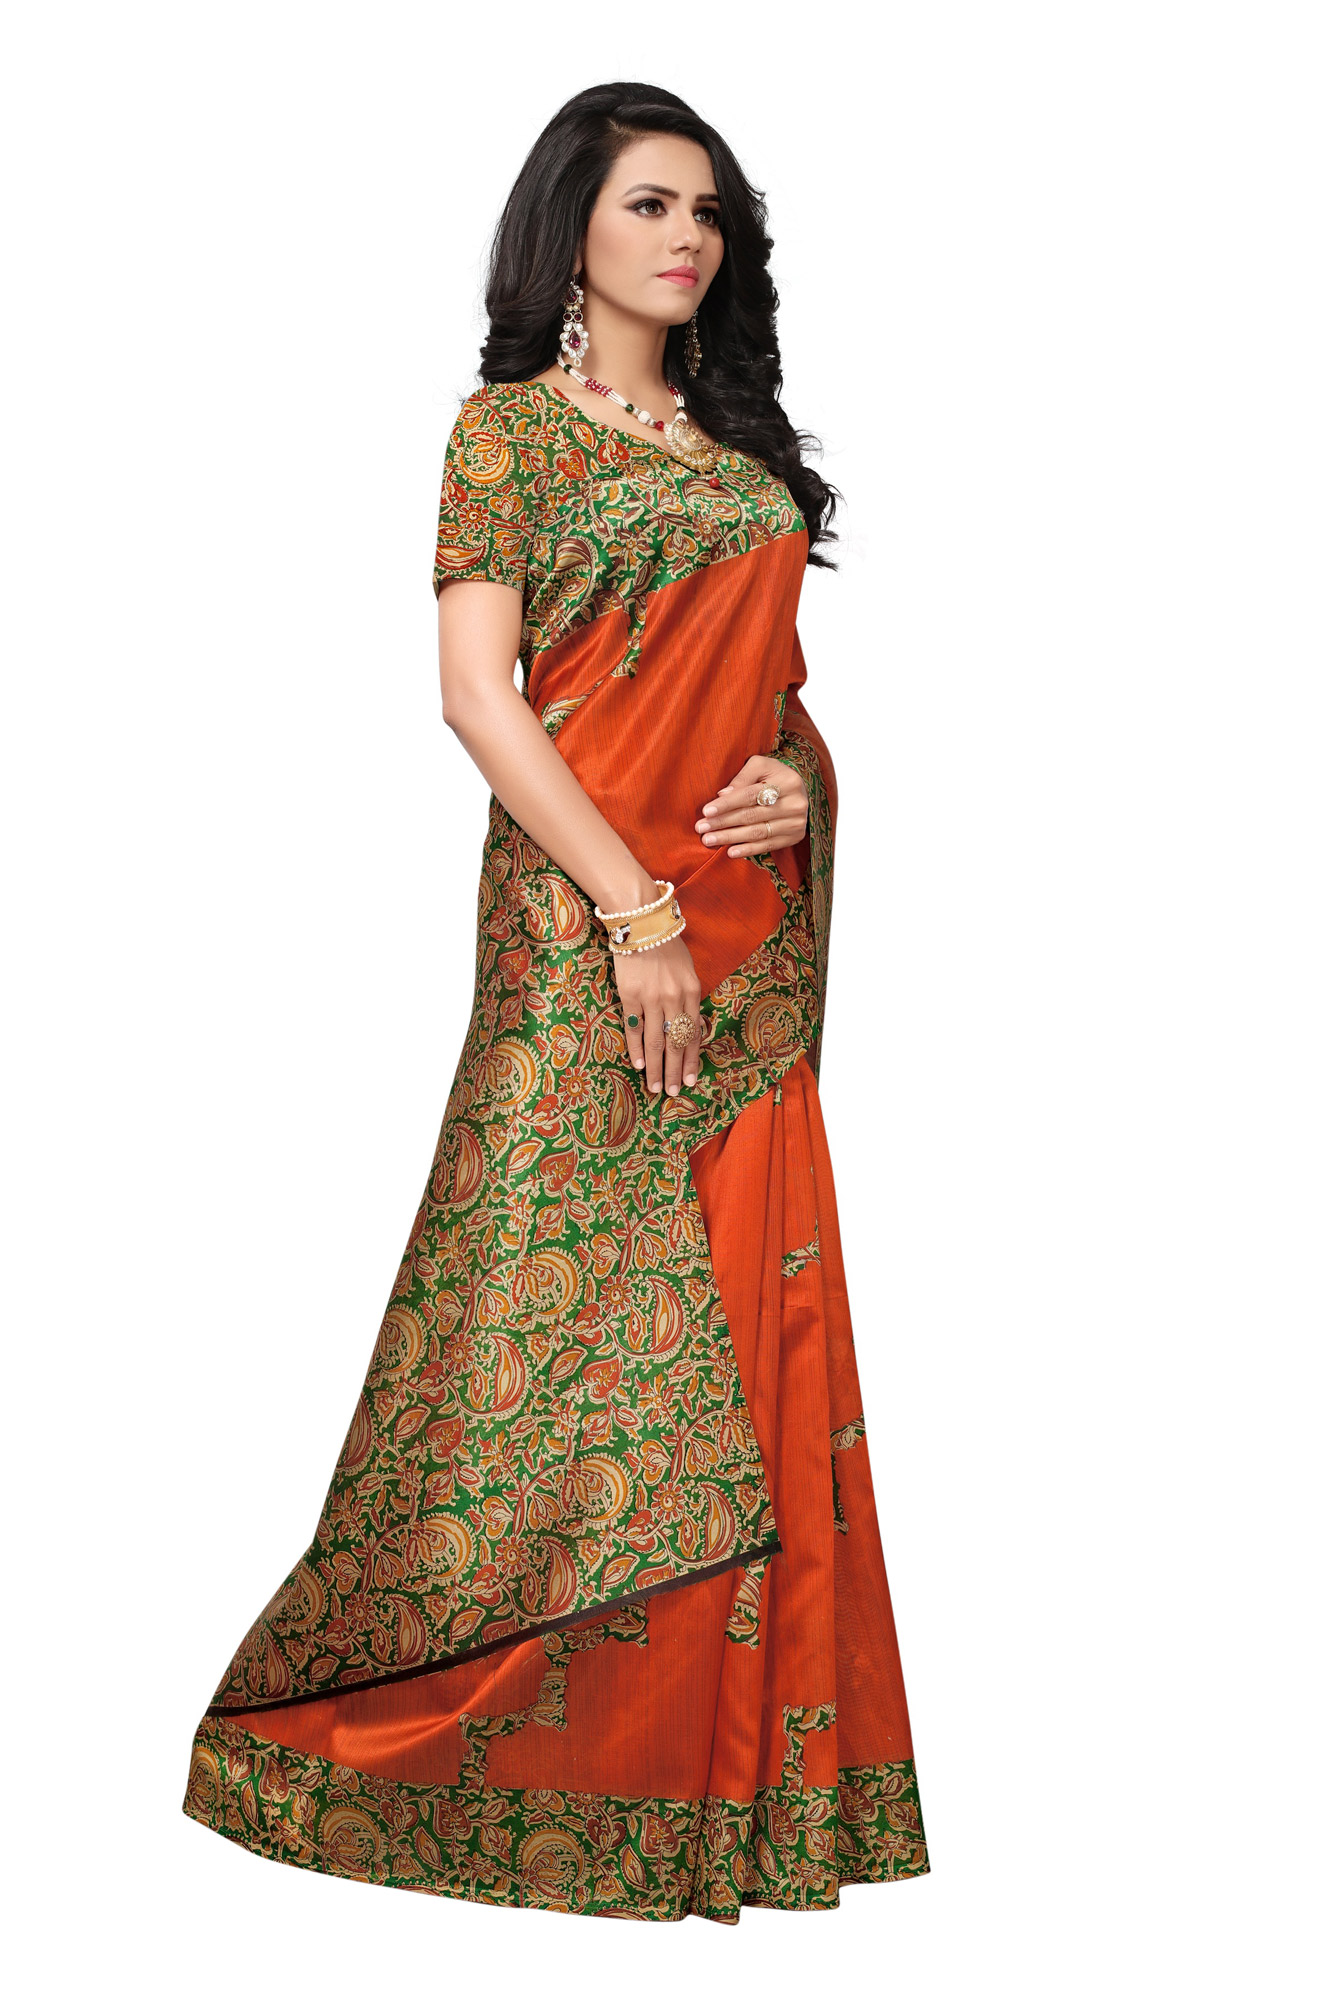 Sensational Orange Colored Festive Wear Printed Banglori Silk Saree